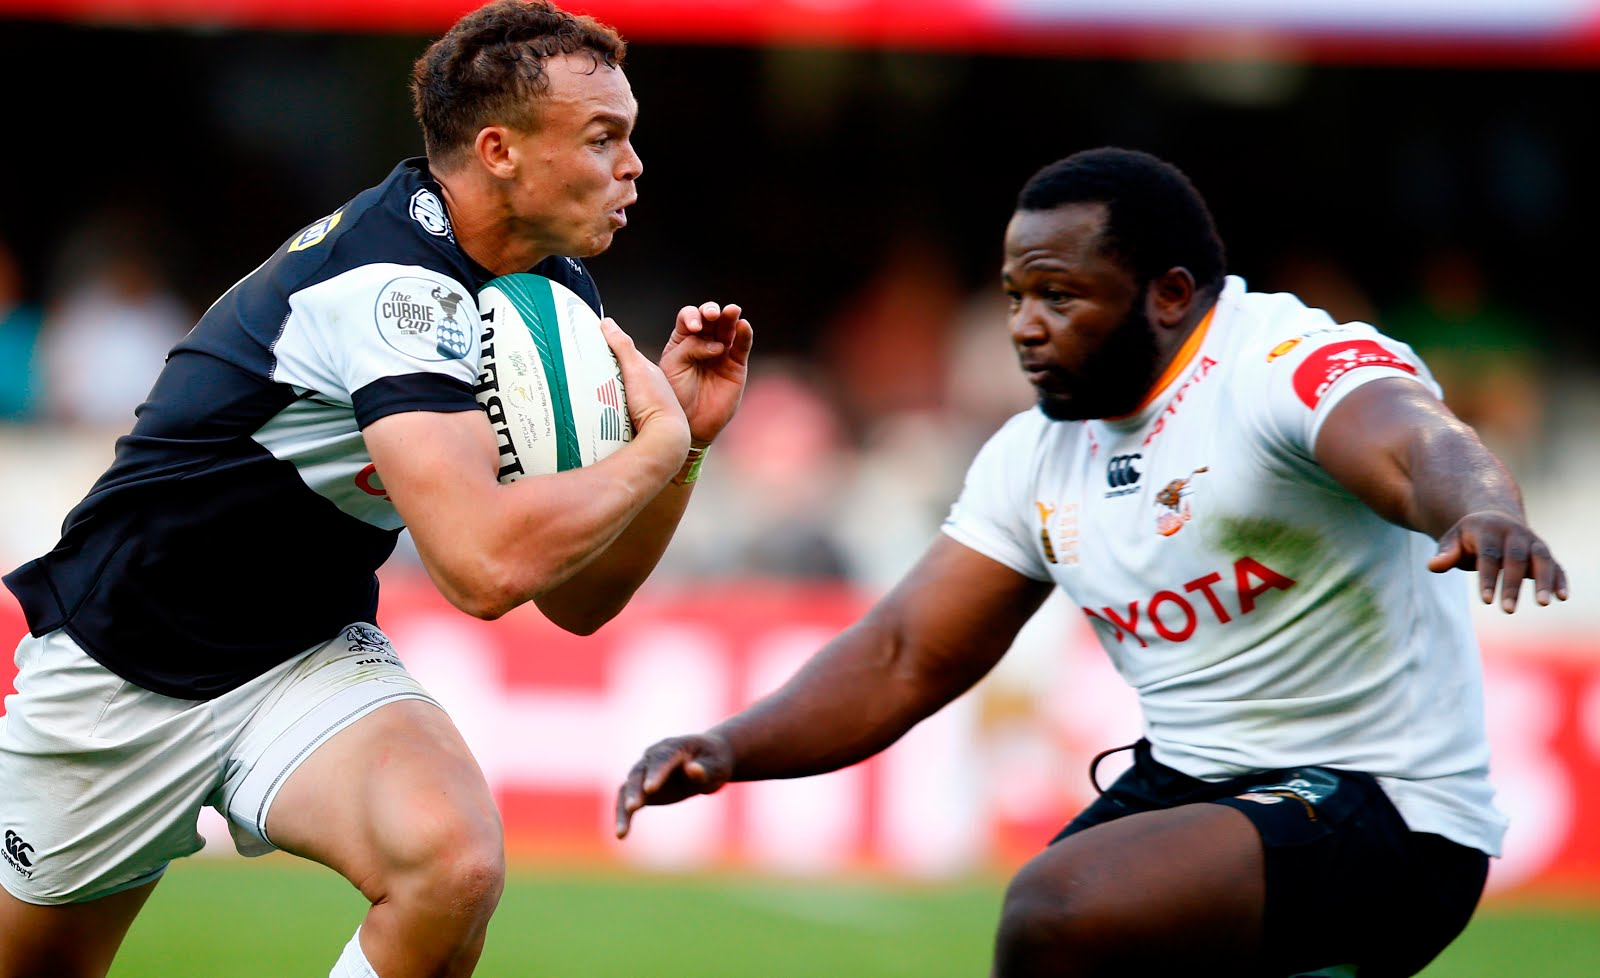 Ox Nche of the Free State Cheetahs looks to tackle Curwin Bosch of the Cell C Sharks during the Currie Cup match between the Cell C Sharks and the Free State Cheetahs at Jonsson Kings Park Stadium in Durban, South Africa 10th August 2019